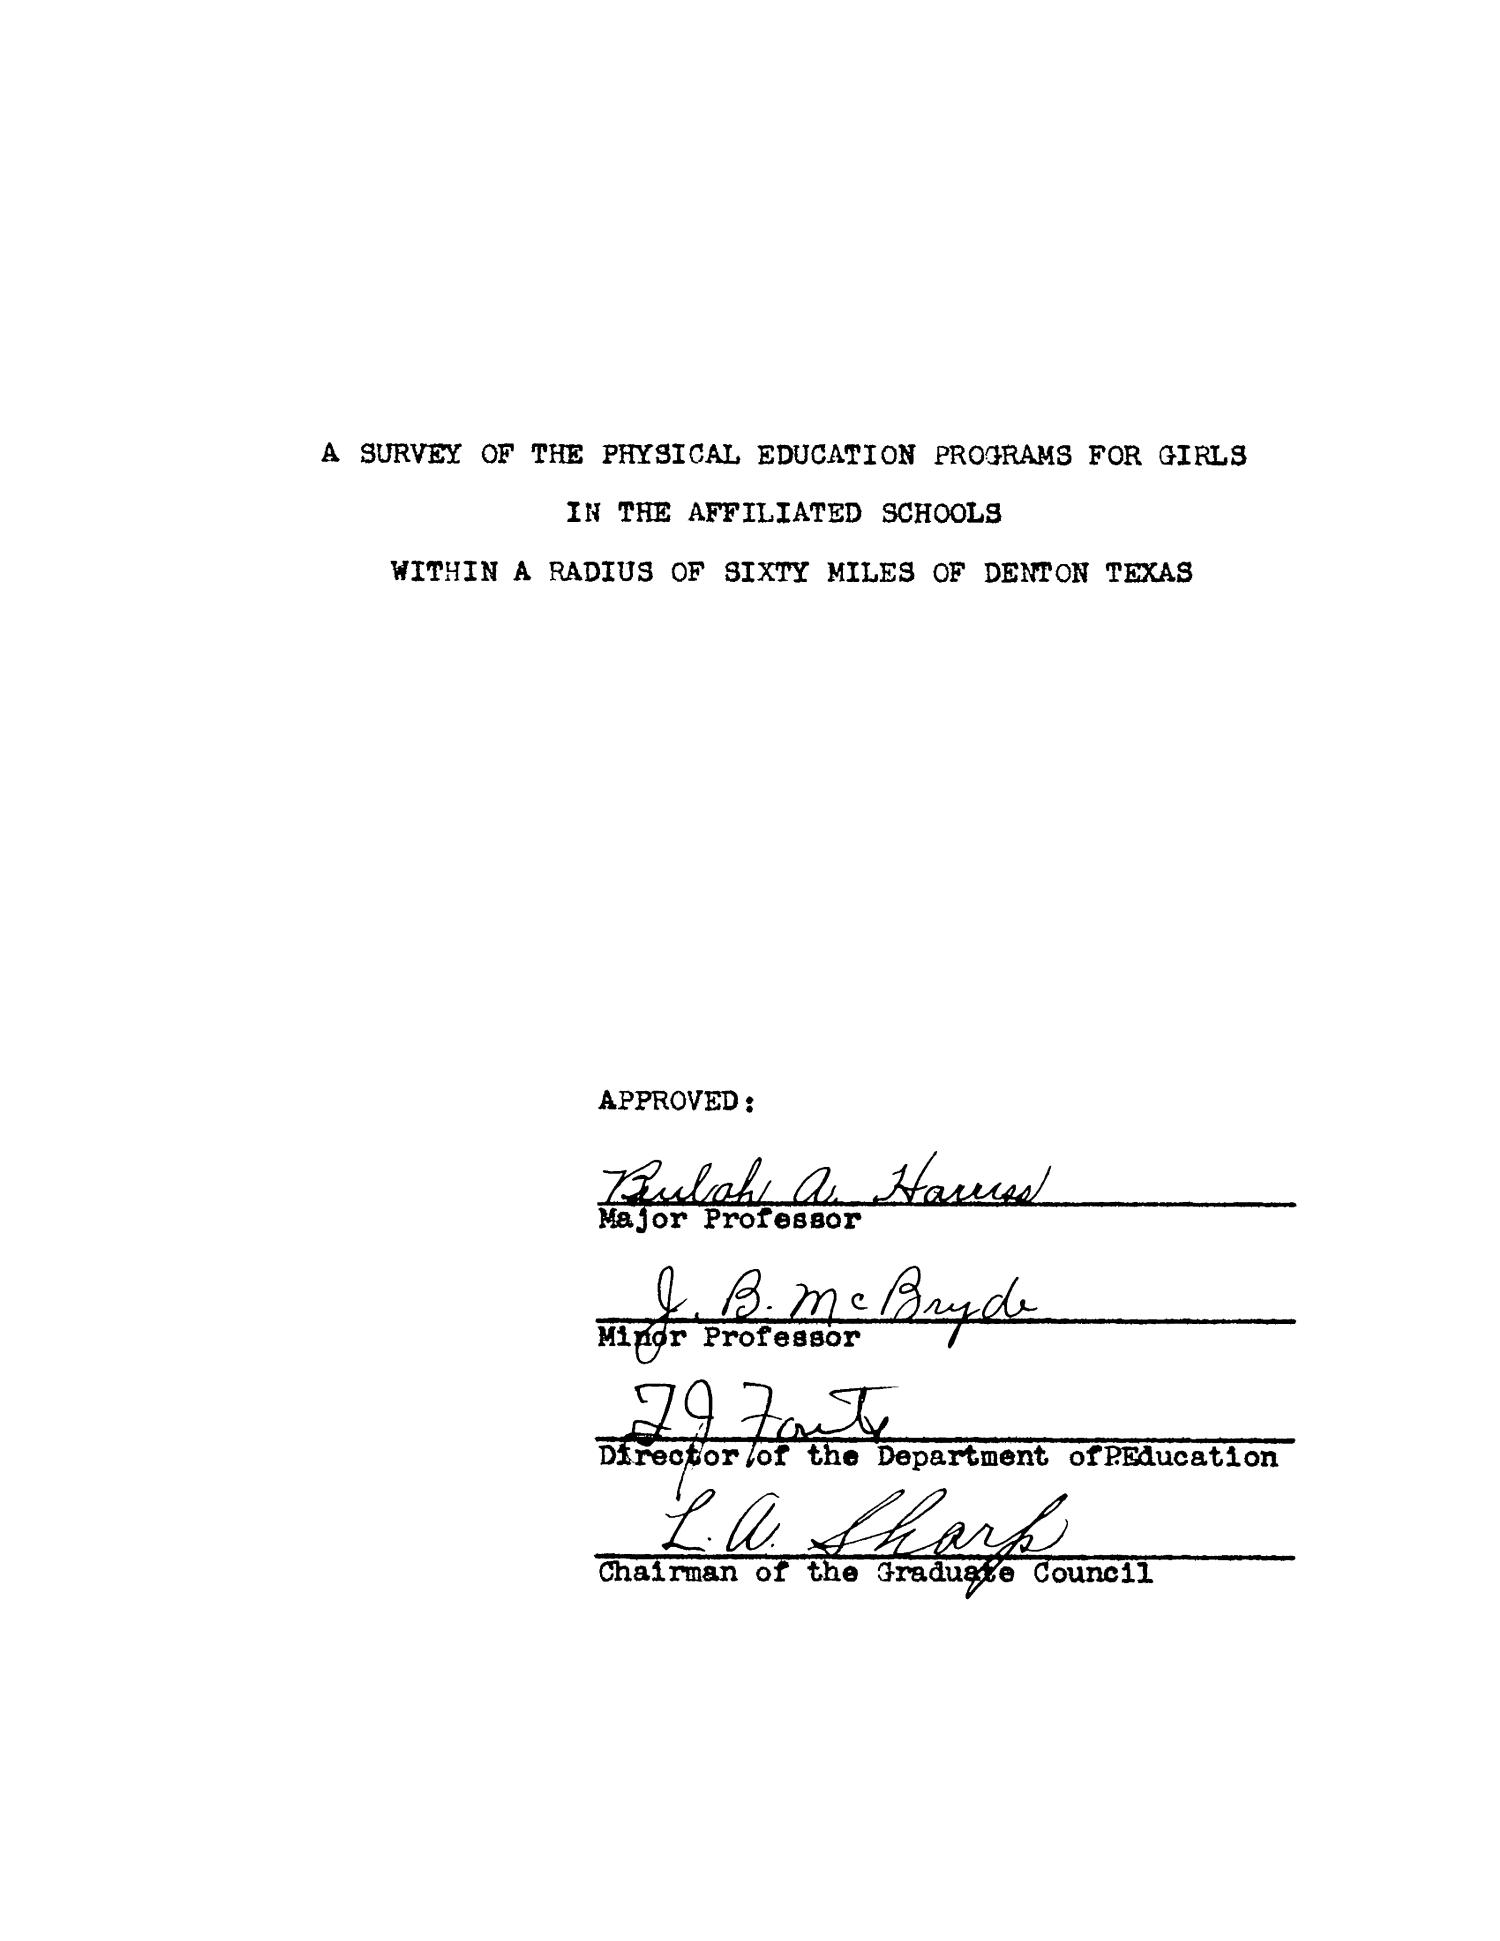 A Survey of the Physical Education Programs for Girls in the Affiliated Schools within a Radius of Sixty Miles of Denton Texas                                                                                                      Title Page